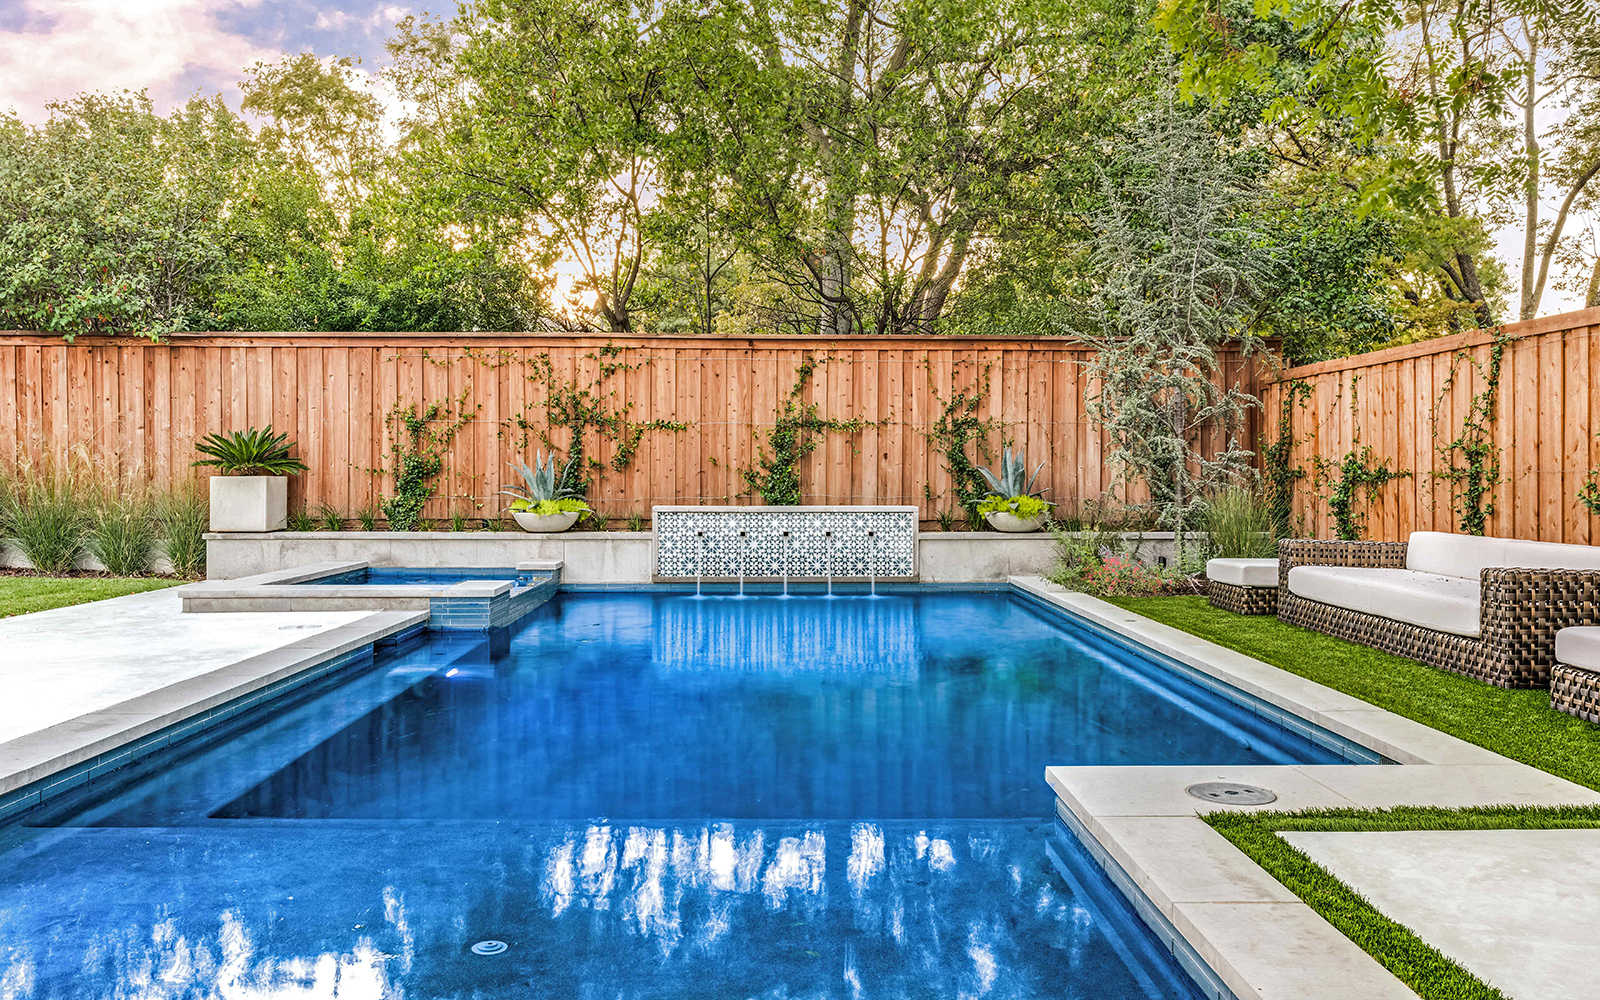 lakewood-rear-modern-pool-spa-fountain.jpg